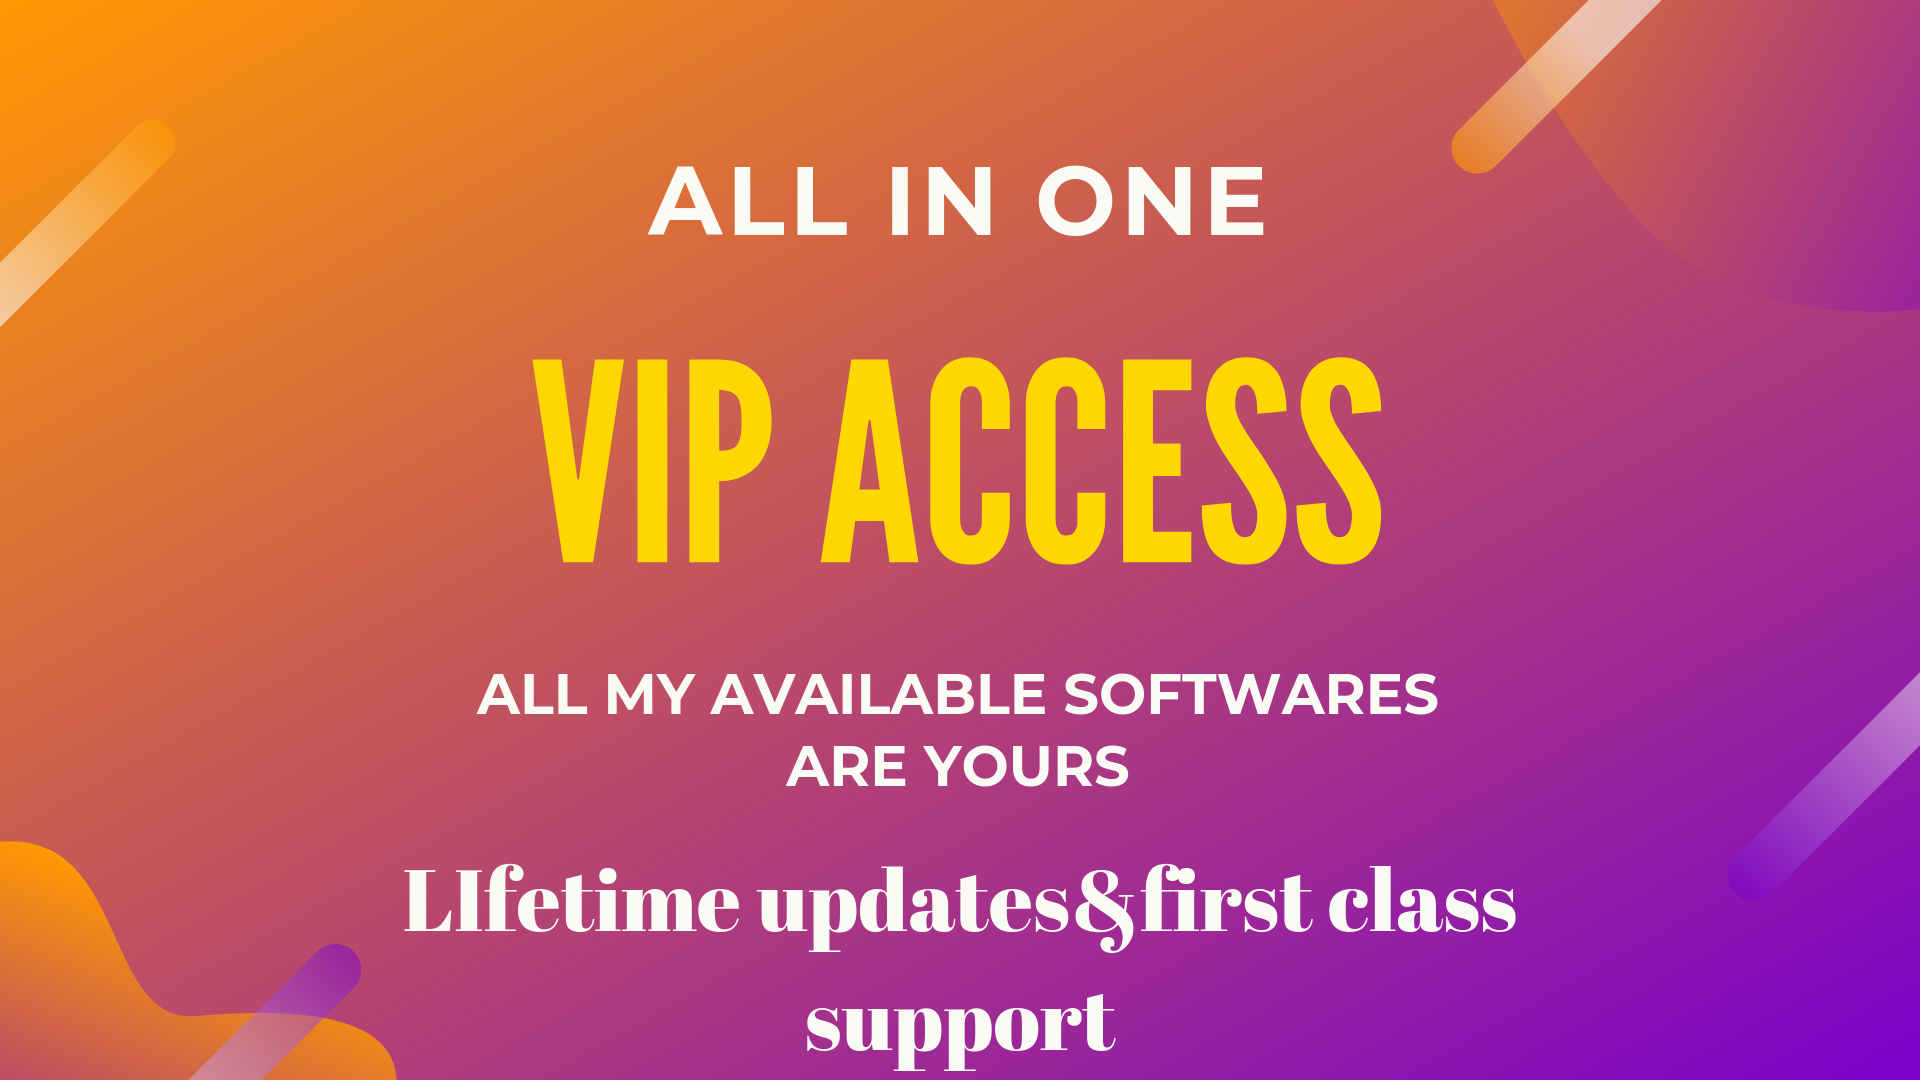 ALL in one Vip acees to all Digital marketing softwares